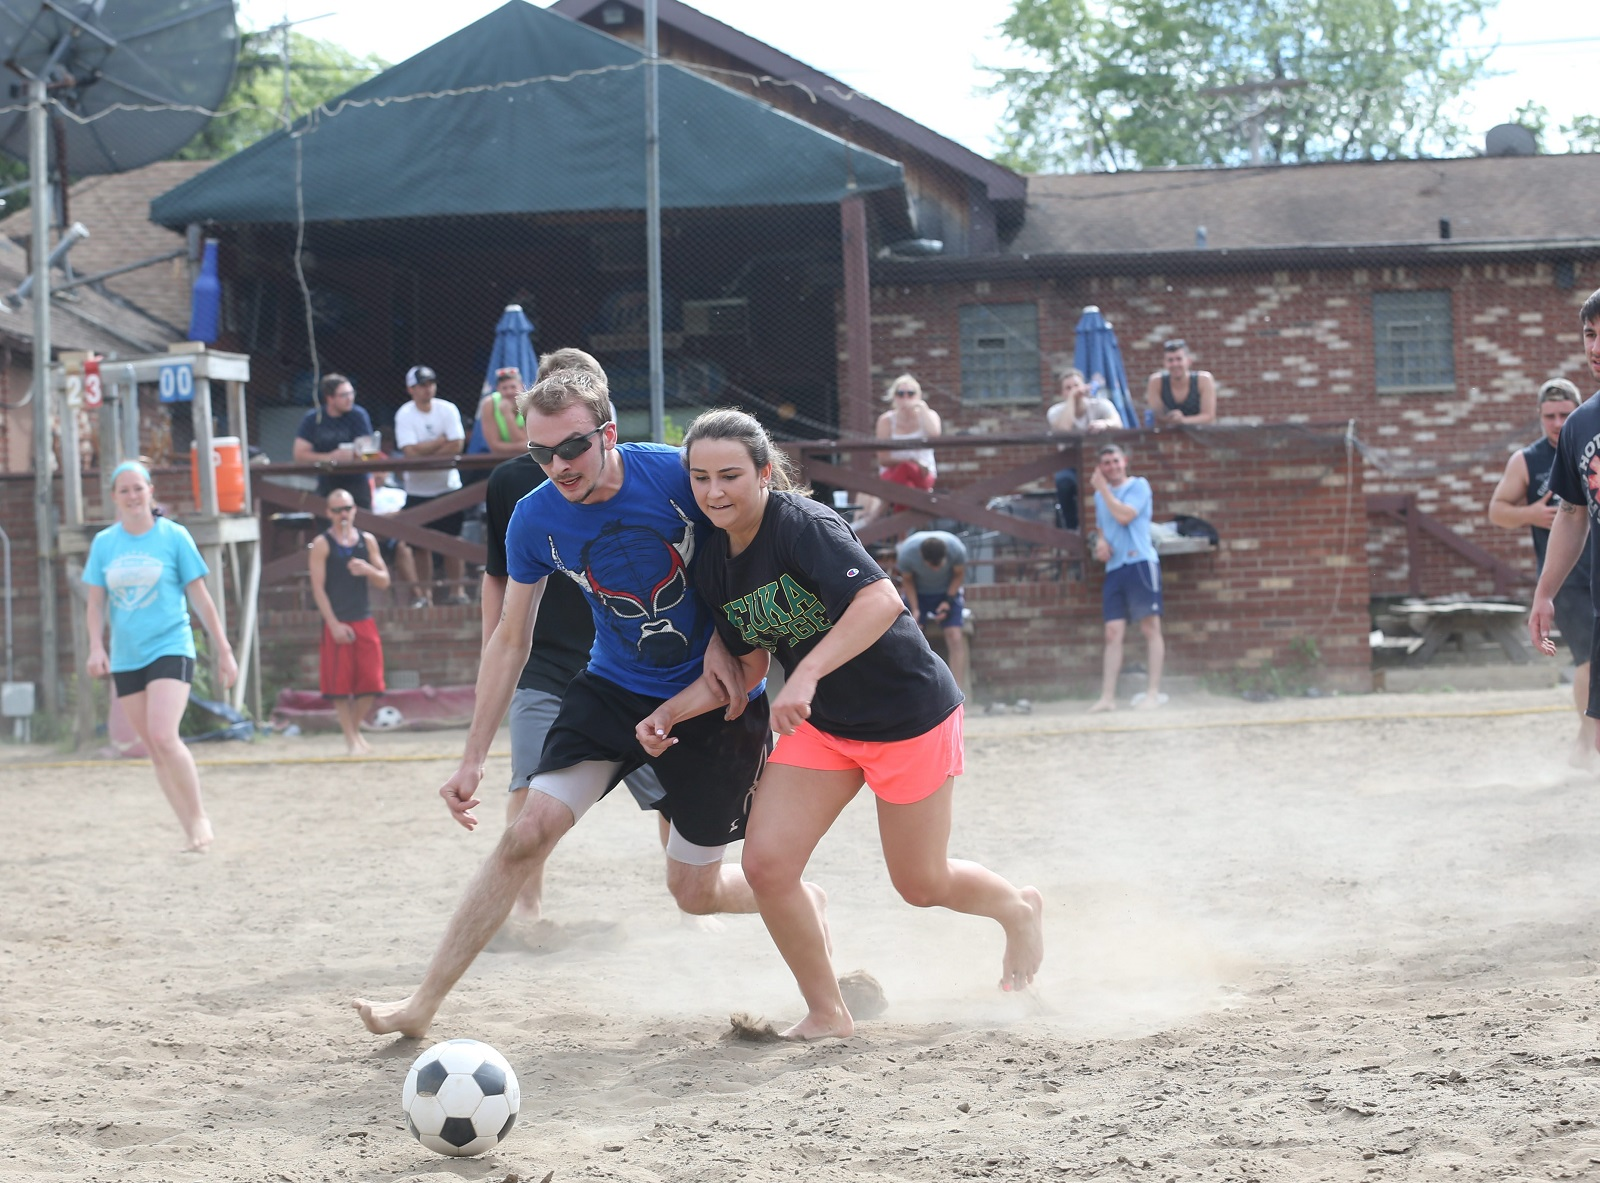 Flattery's at 1130 Orchard Park Road in West Seneca runs sand volleyball Monday through Friday nights and co-ed sand soccer on Sundays from 4 to 8 p.m. Opposing players Alex Will, left, and Lindsey Michaels go after a loose ball. (Sharon Cantillon/Buffalo News)